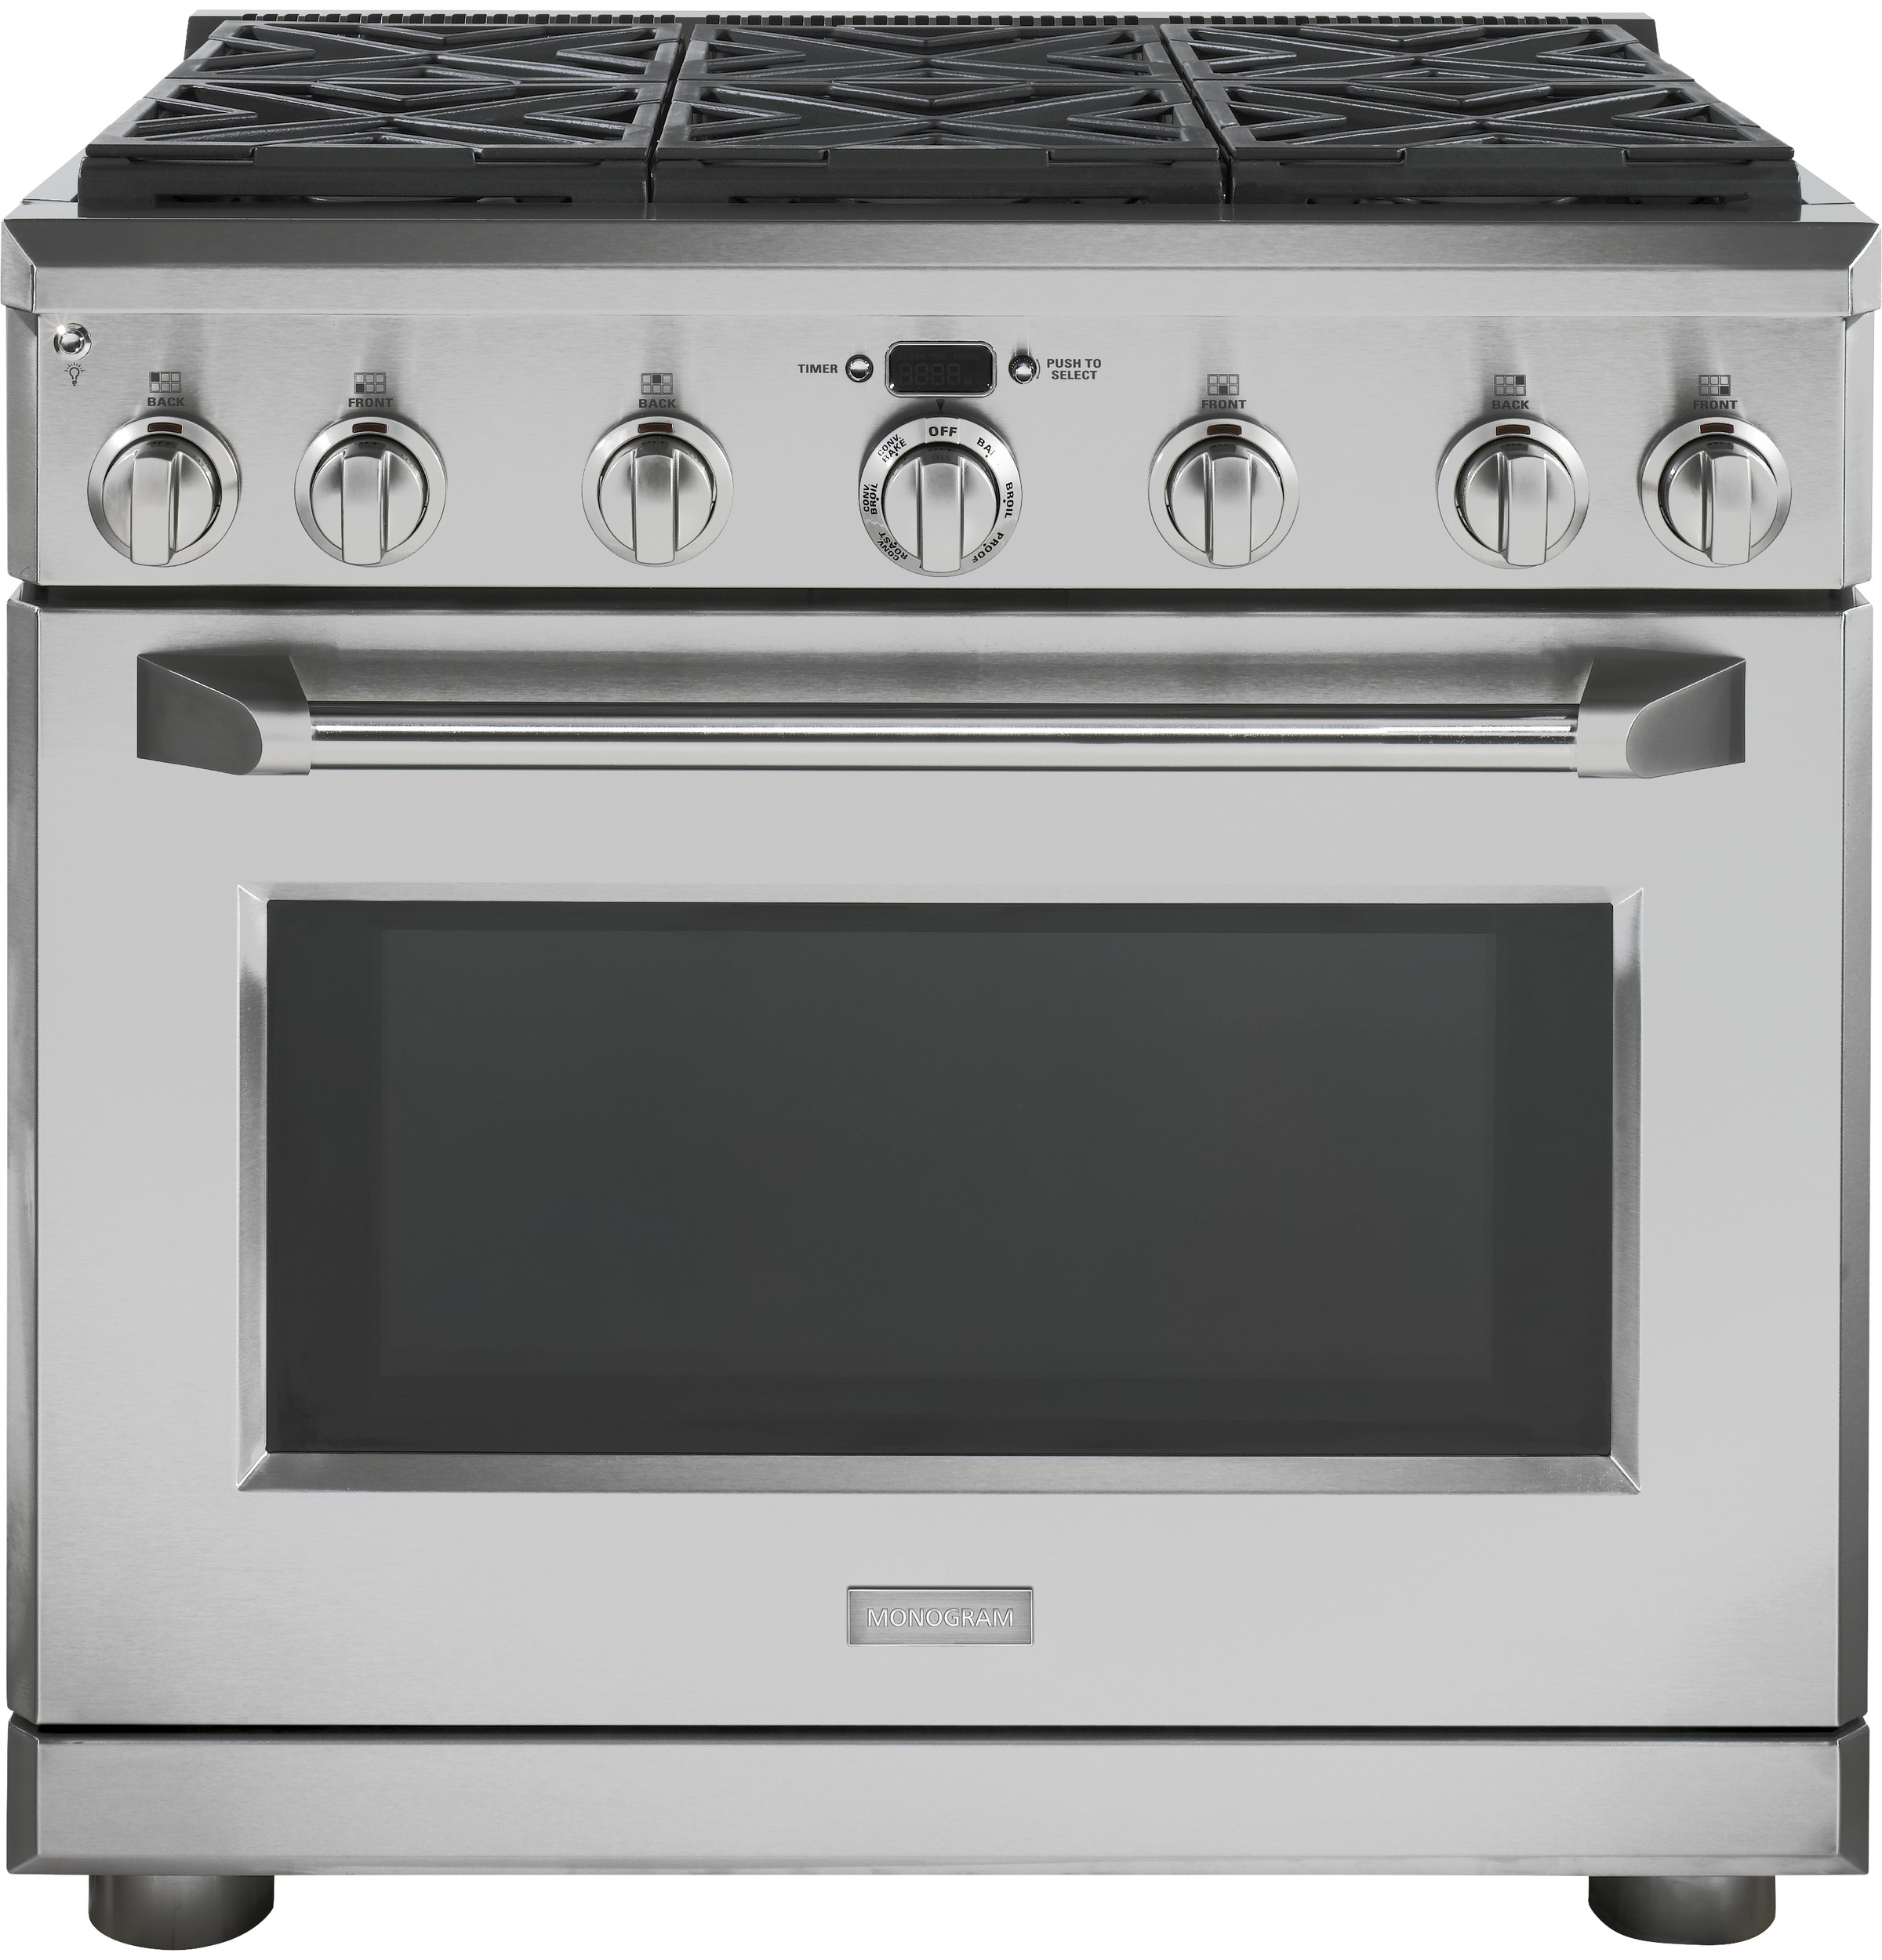 Monogram 36 All Gas Professional Range With 6 Burners